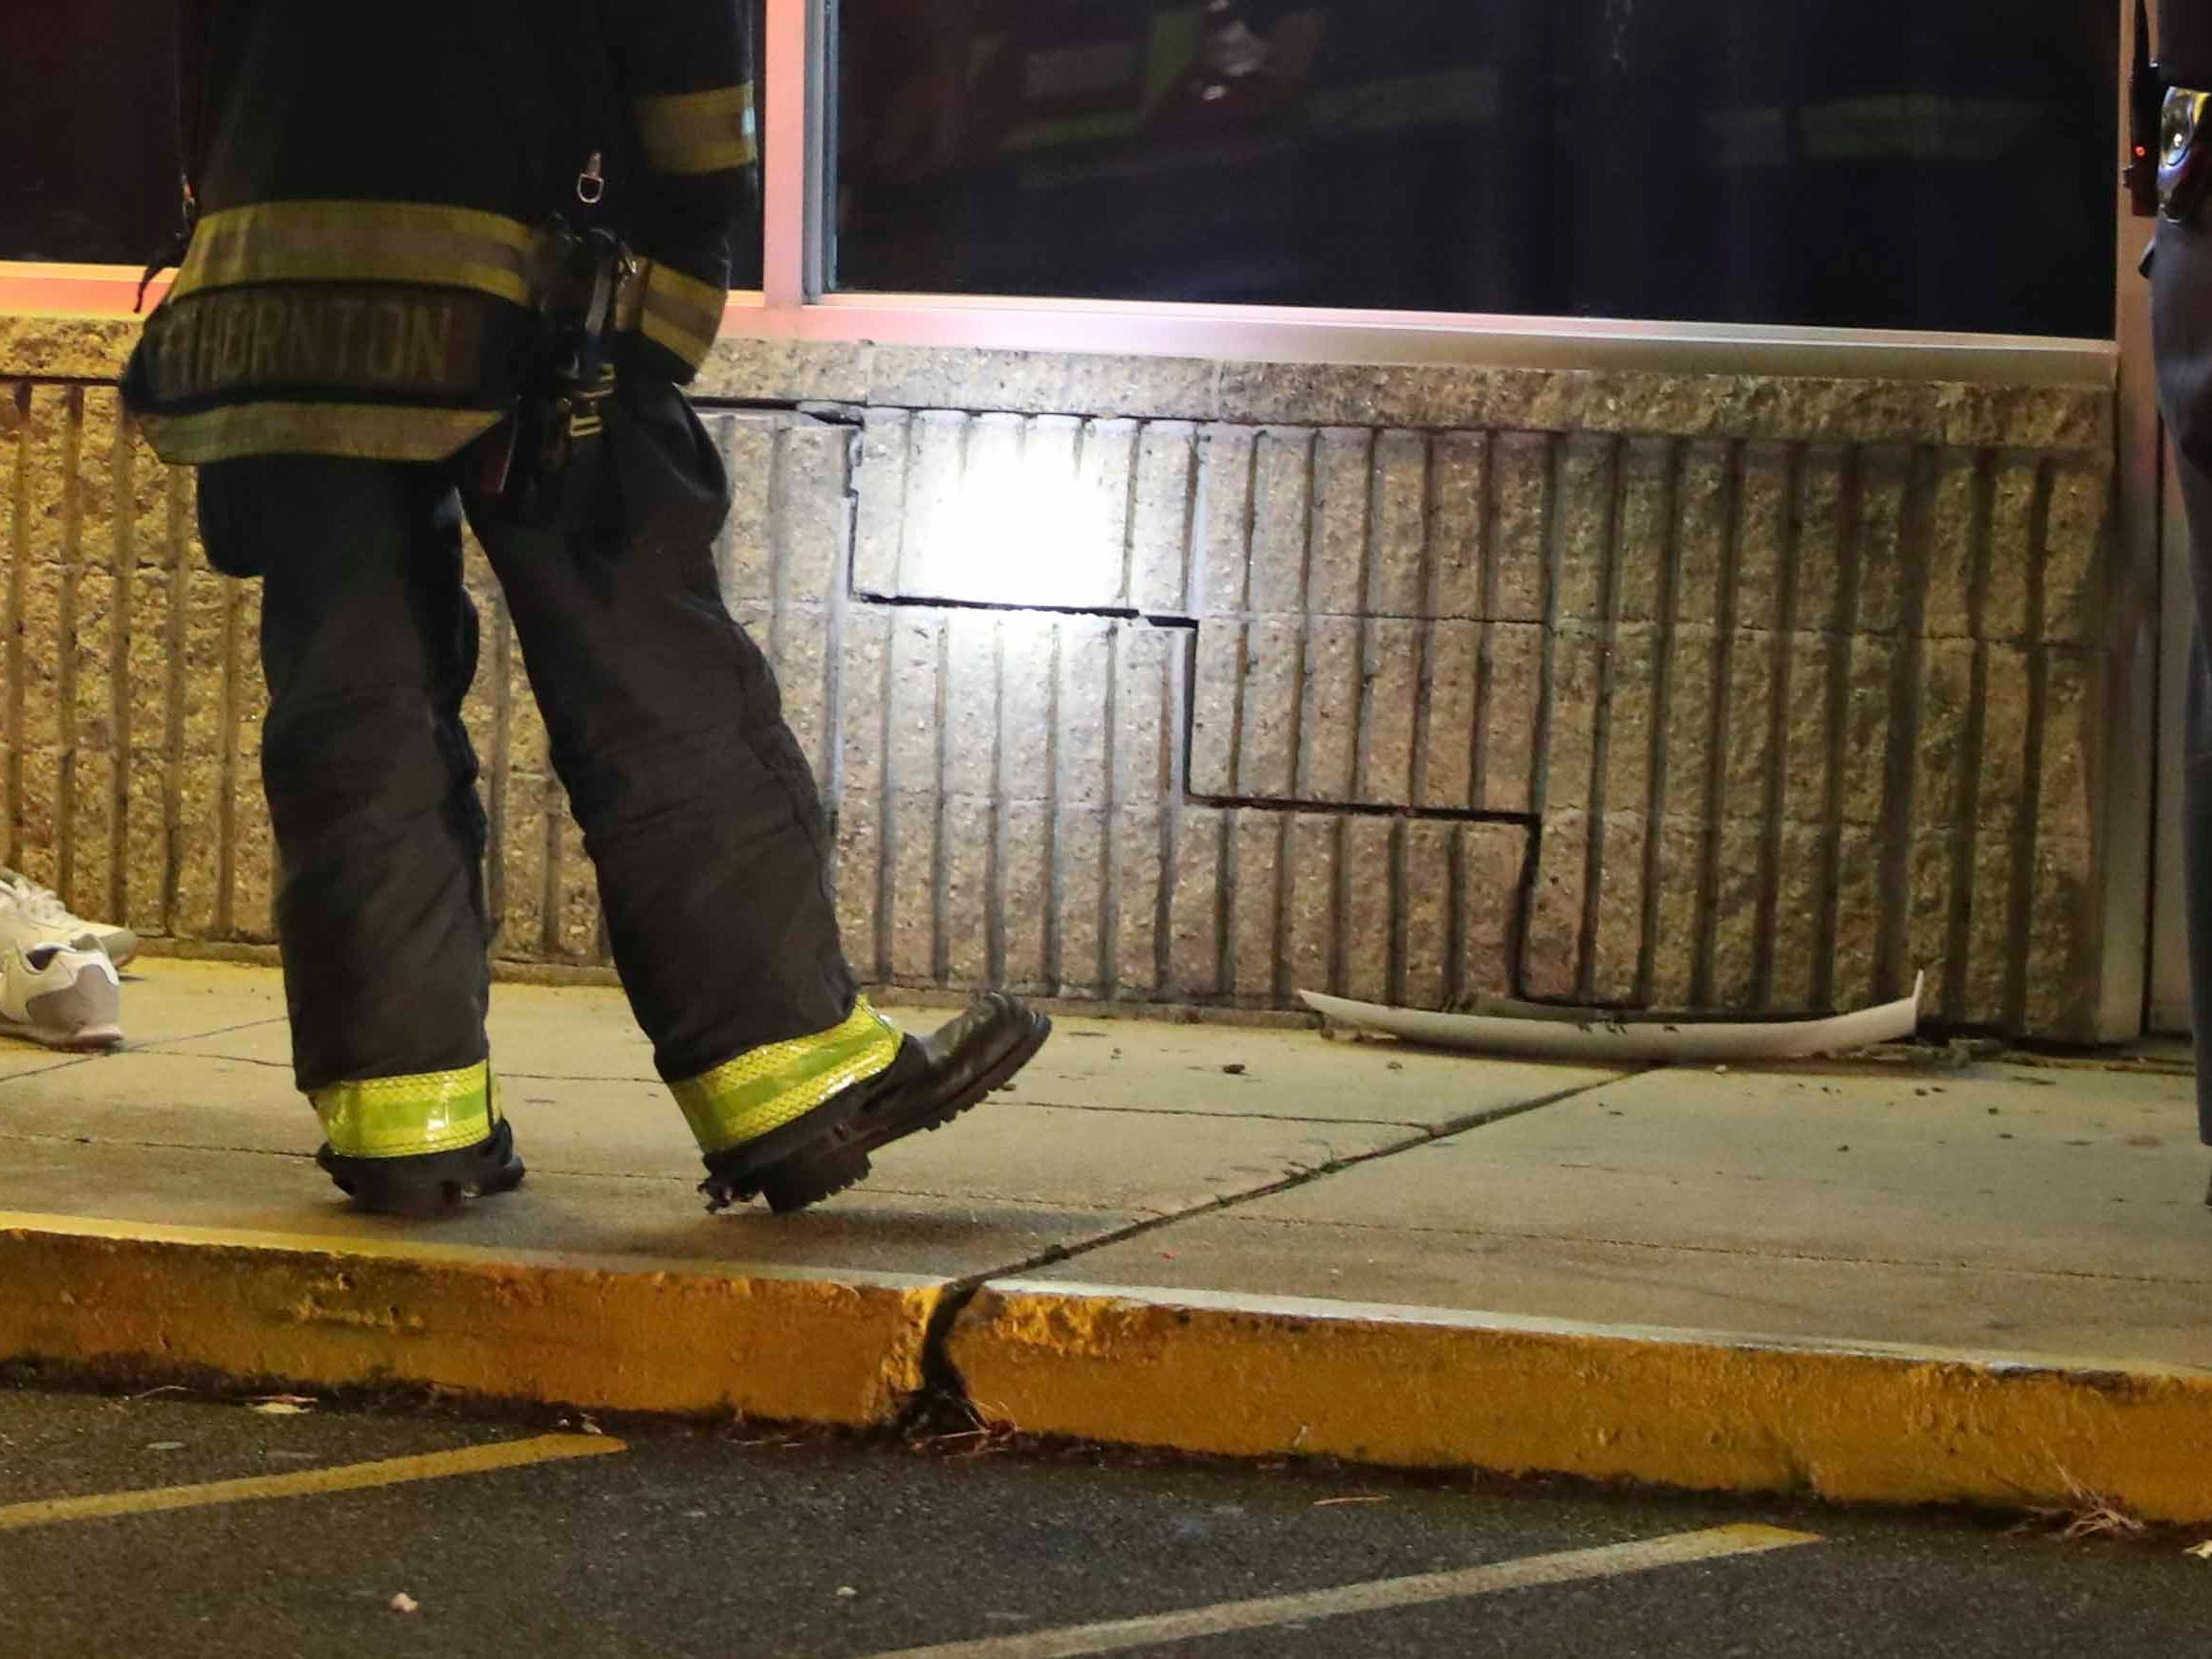 Shoes and cracked, displaced blocks are left at the scene after a woman was reported to have been struck by a van and pinned to a wall in the Basin Shoppes on East Basin Road in New Castle about 11:10 p.m. Friday.